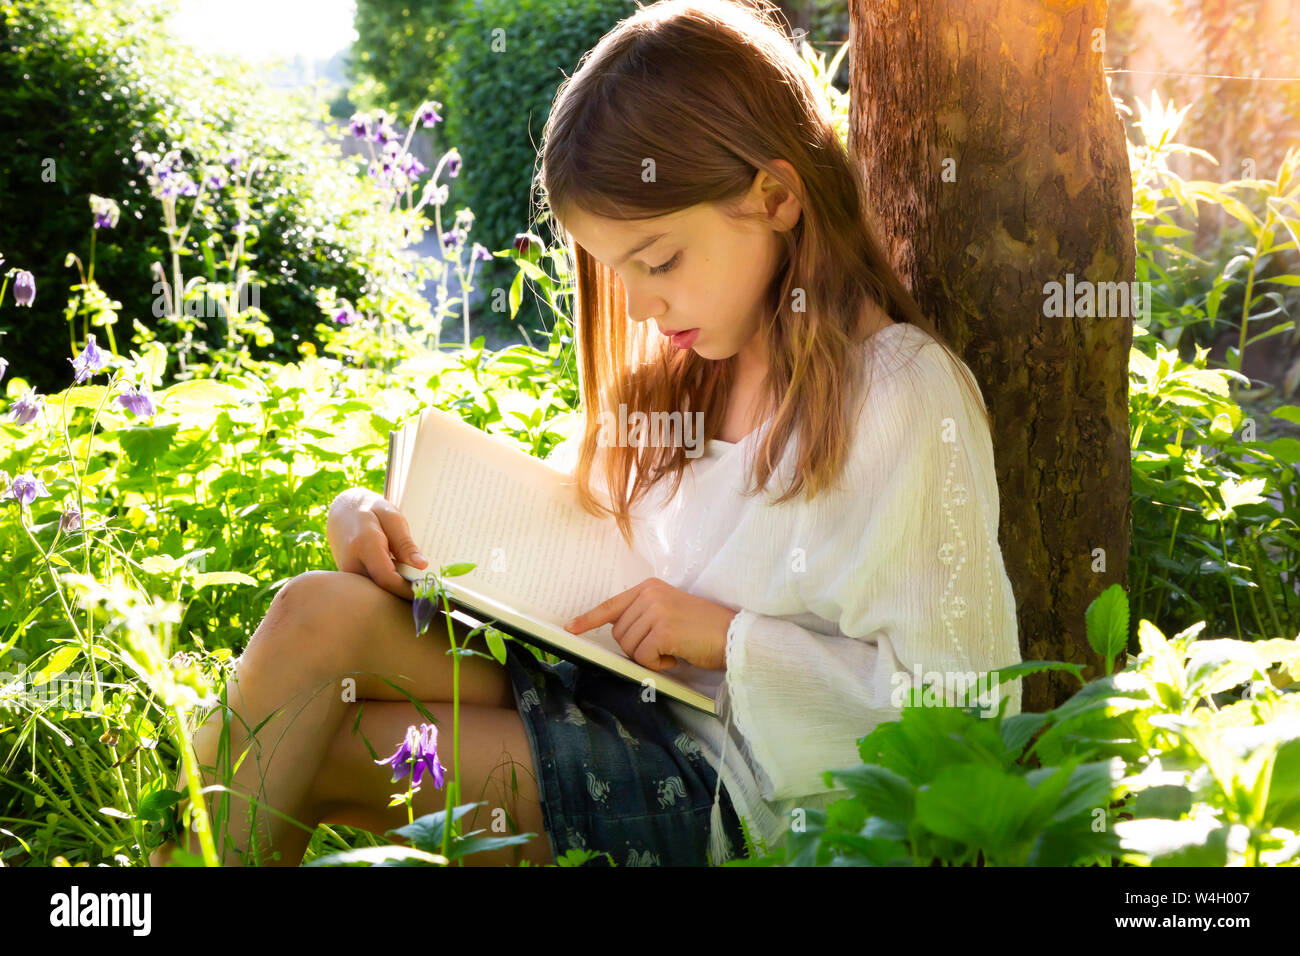 Little girl leaning against tree trunk reading a book Stock Photo